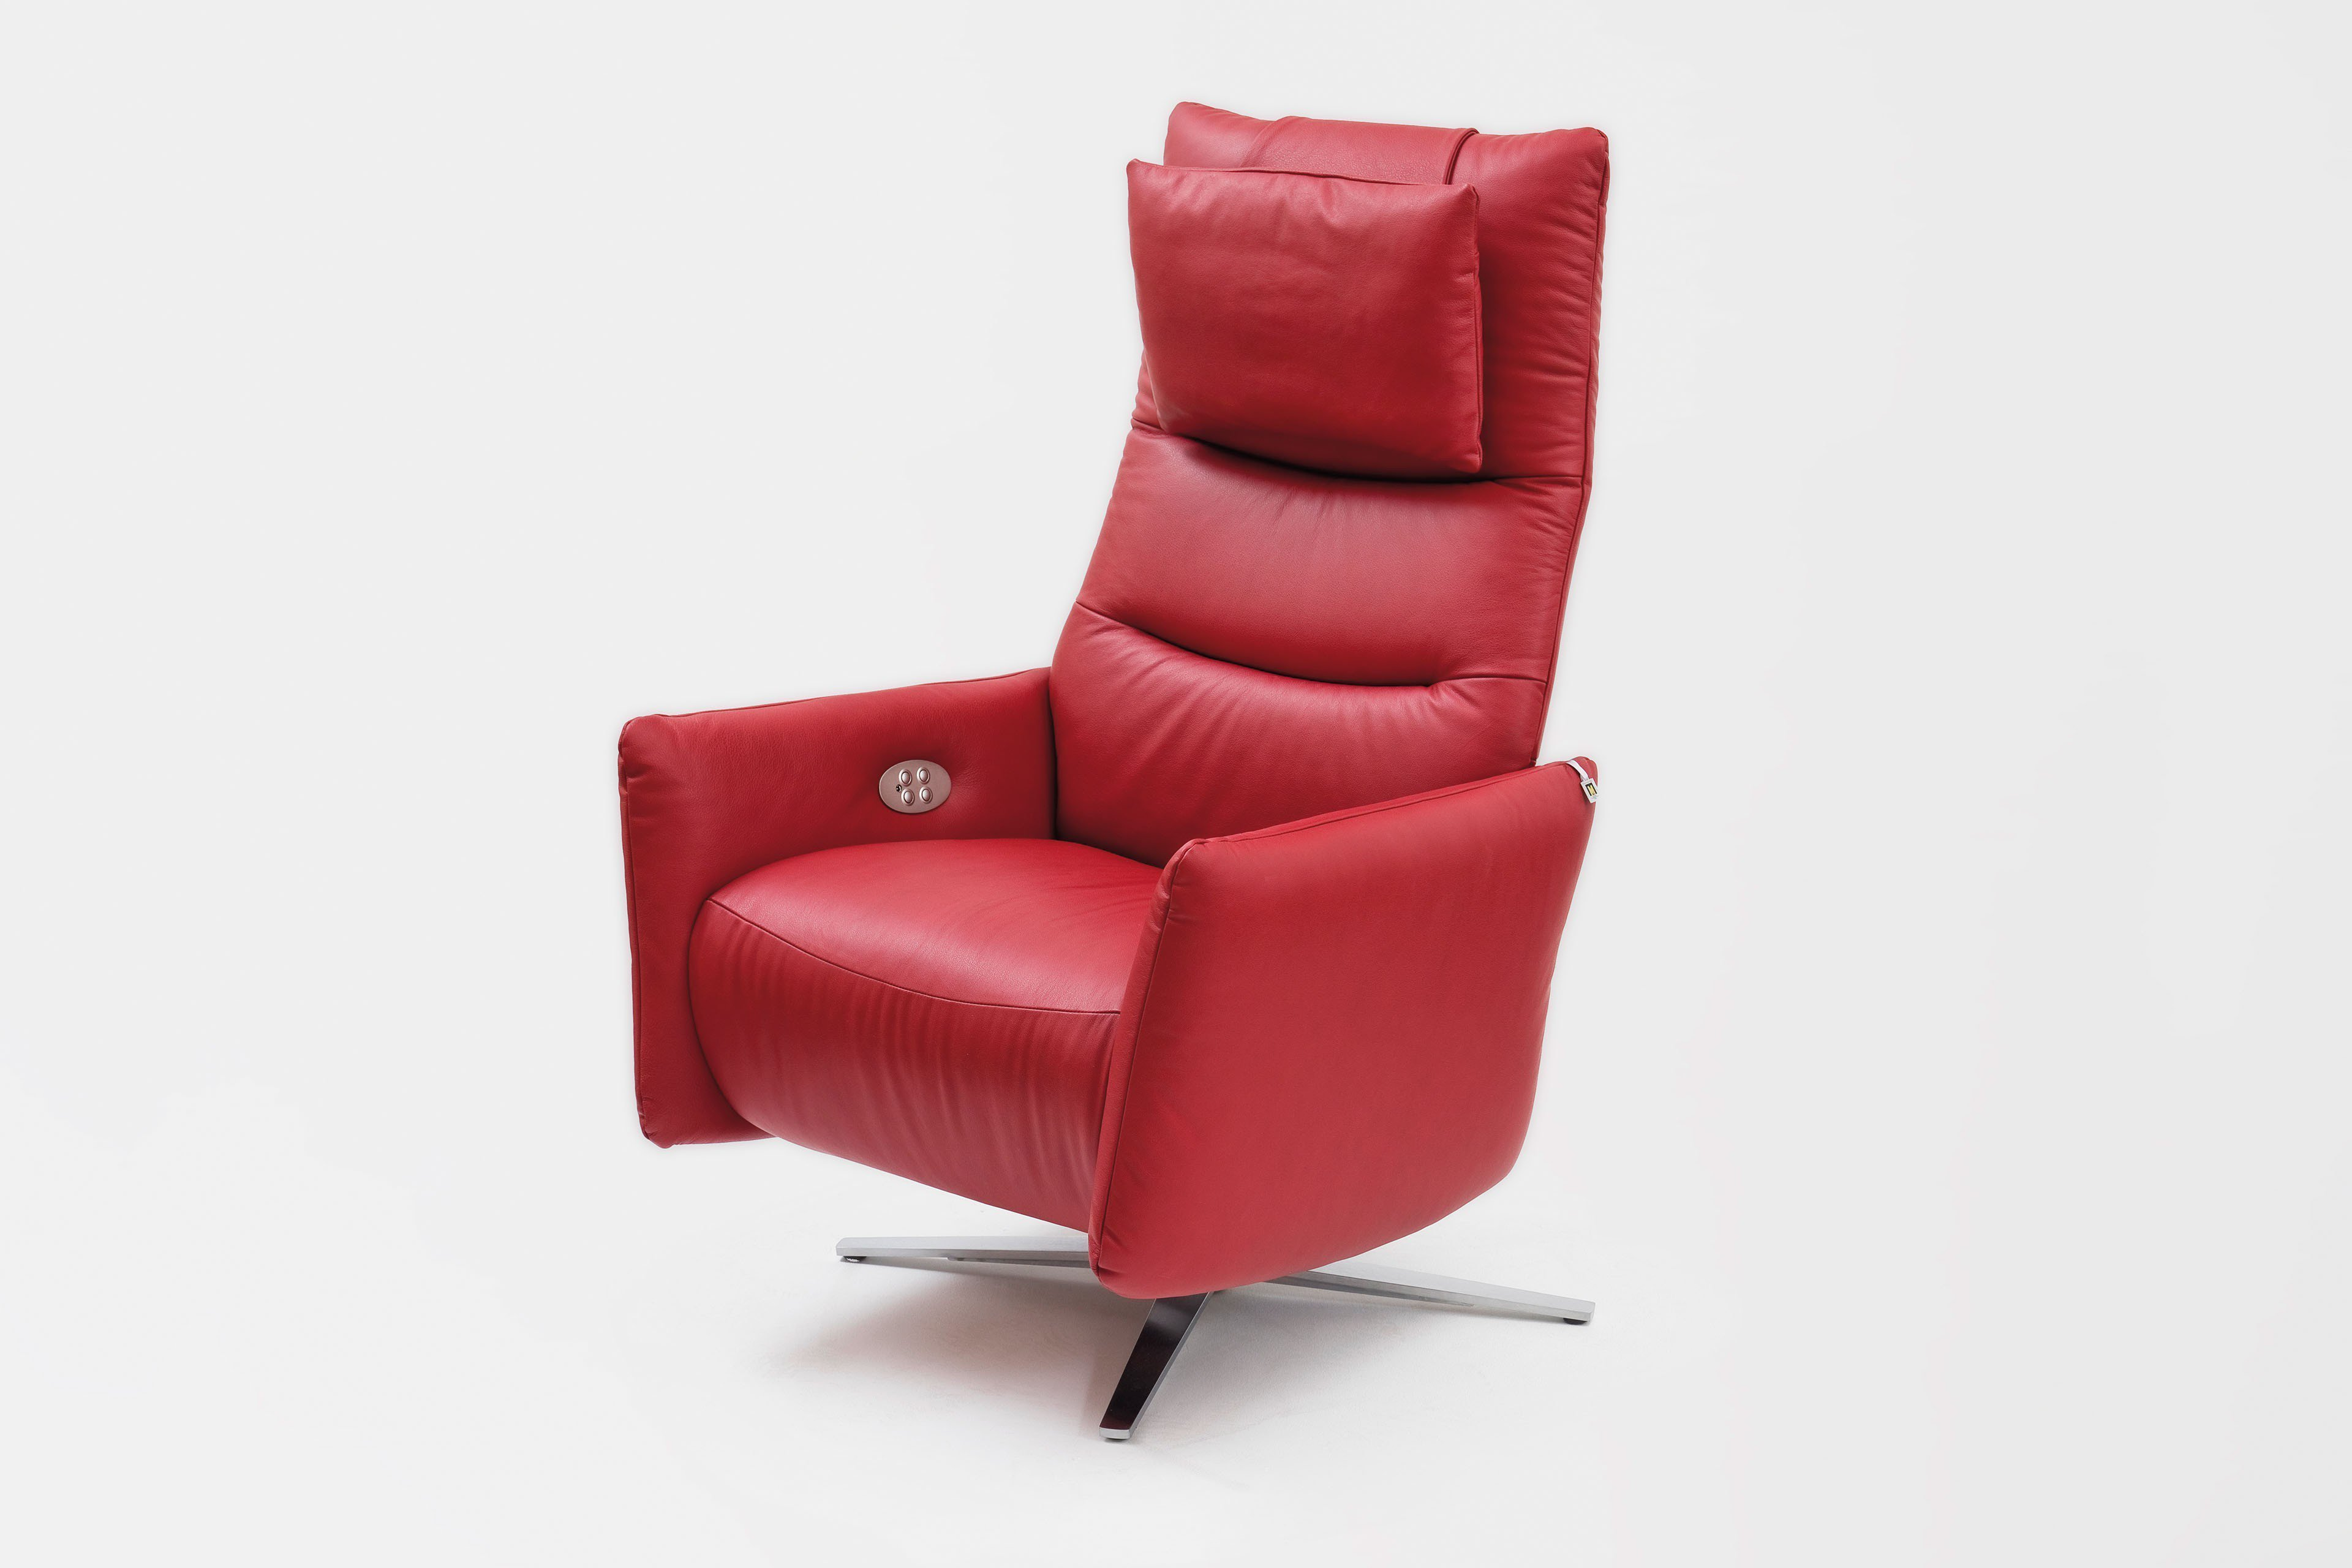 Relax Sessel 32600 Salsaa Von Willi Schillig Relaxsessel Rosso